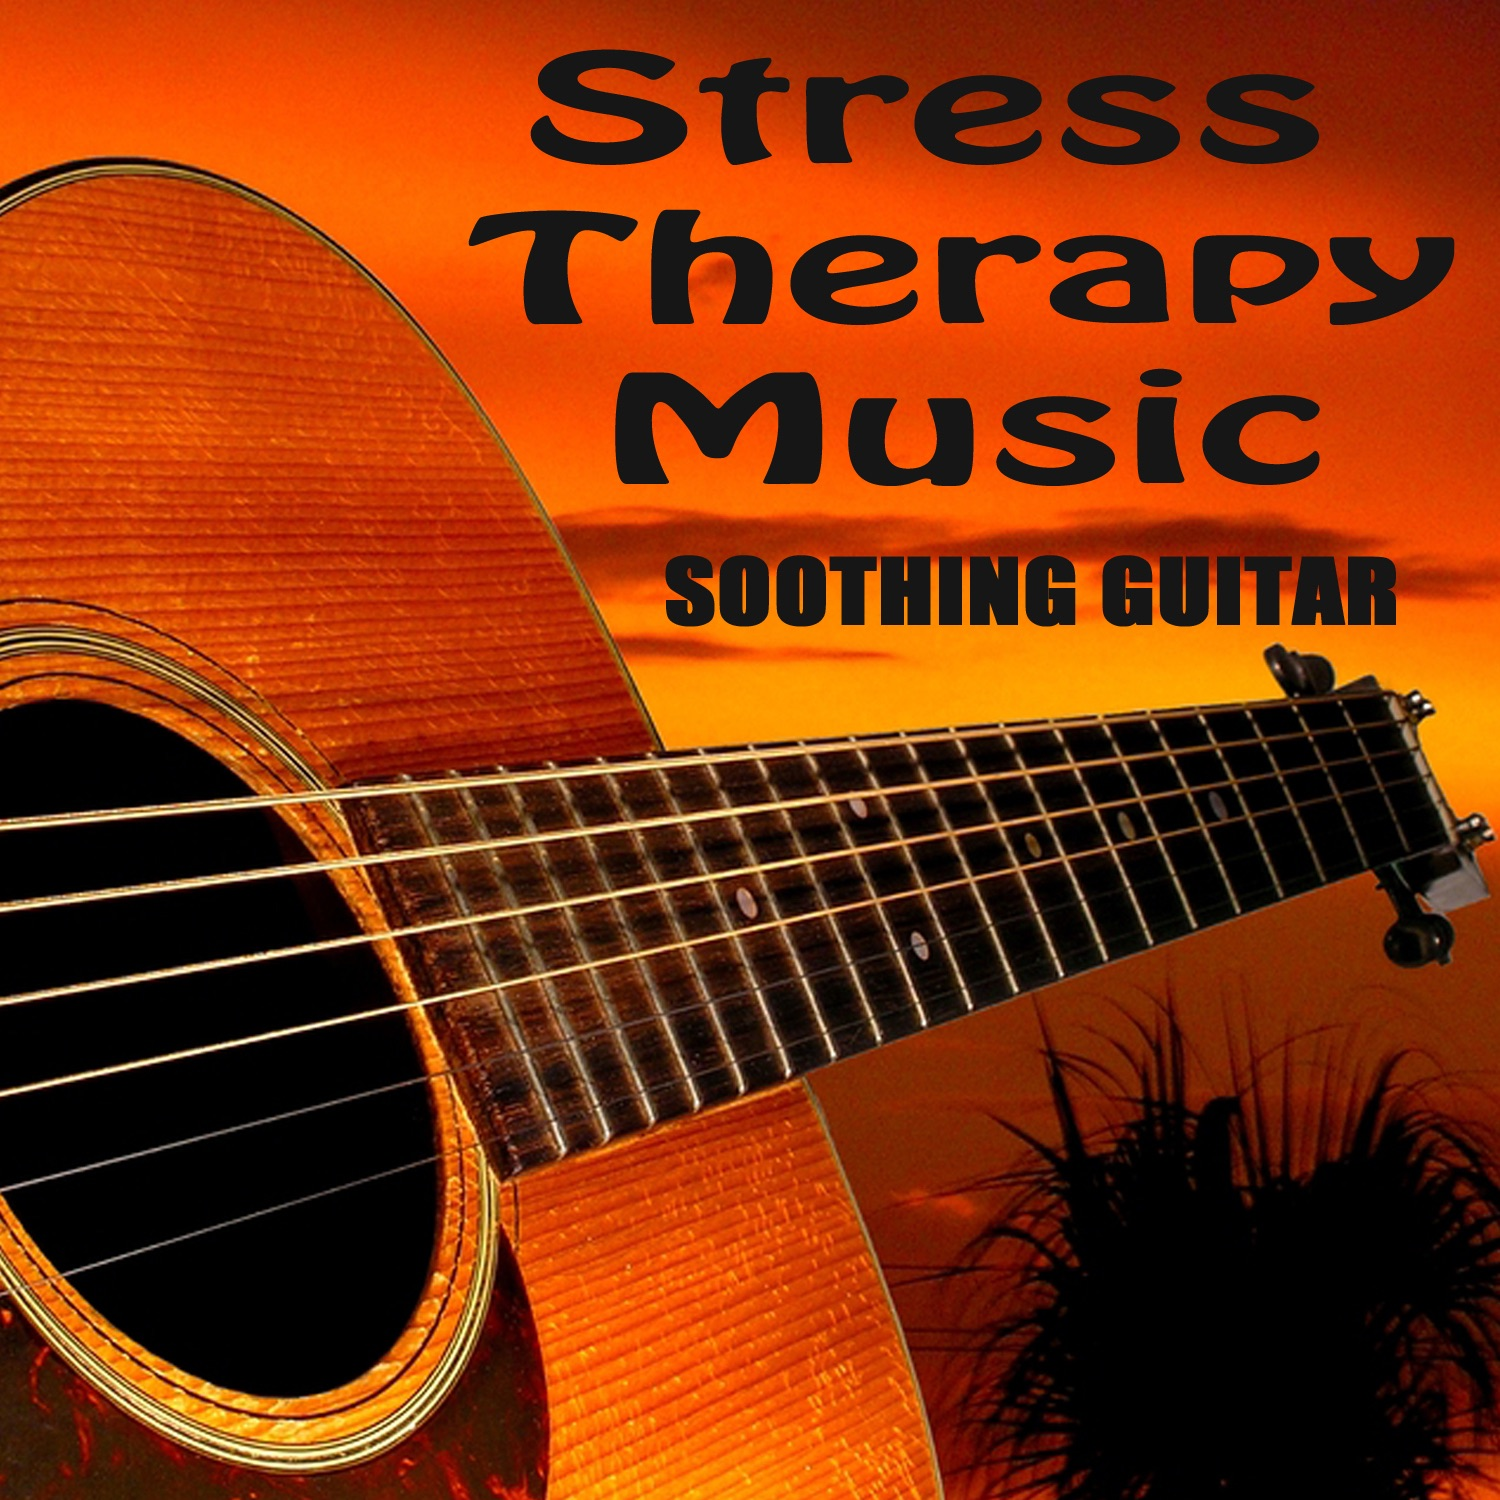 Stress Therapy Music: Soothing Guitar